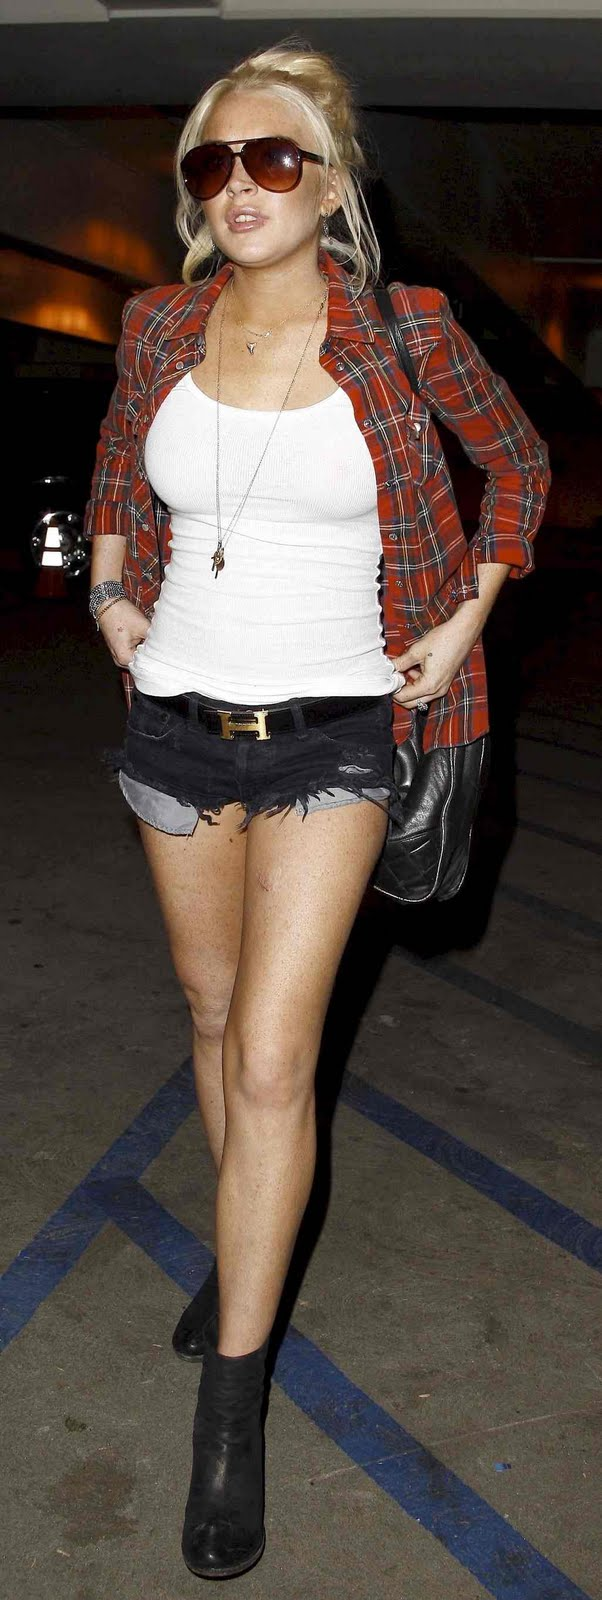 Lindsay Lohan at Coldplay Concert in Los Angeles